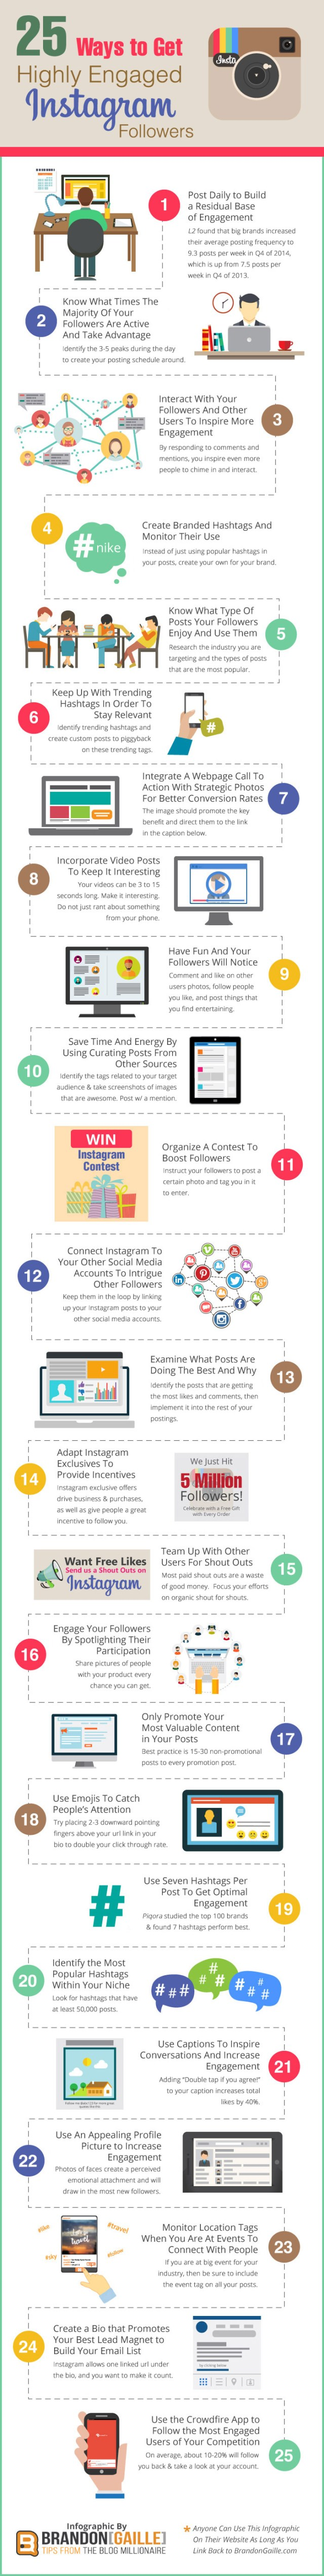 Instagram Marketing Infographic